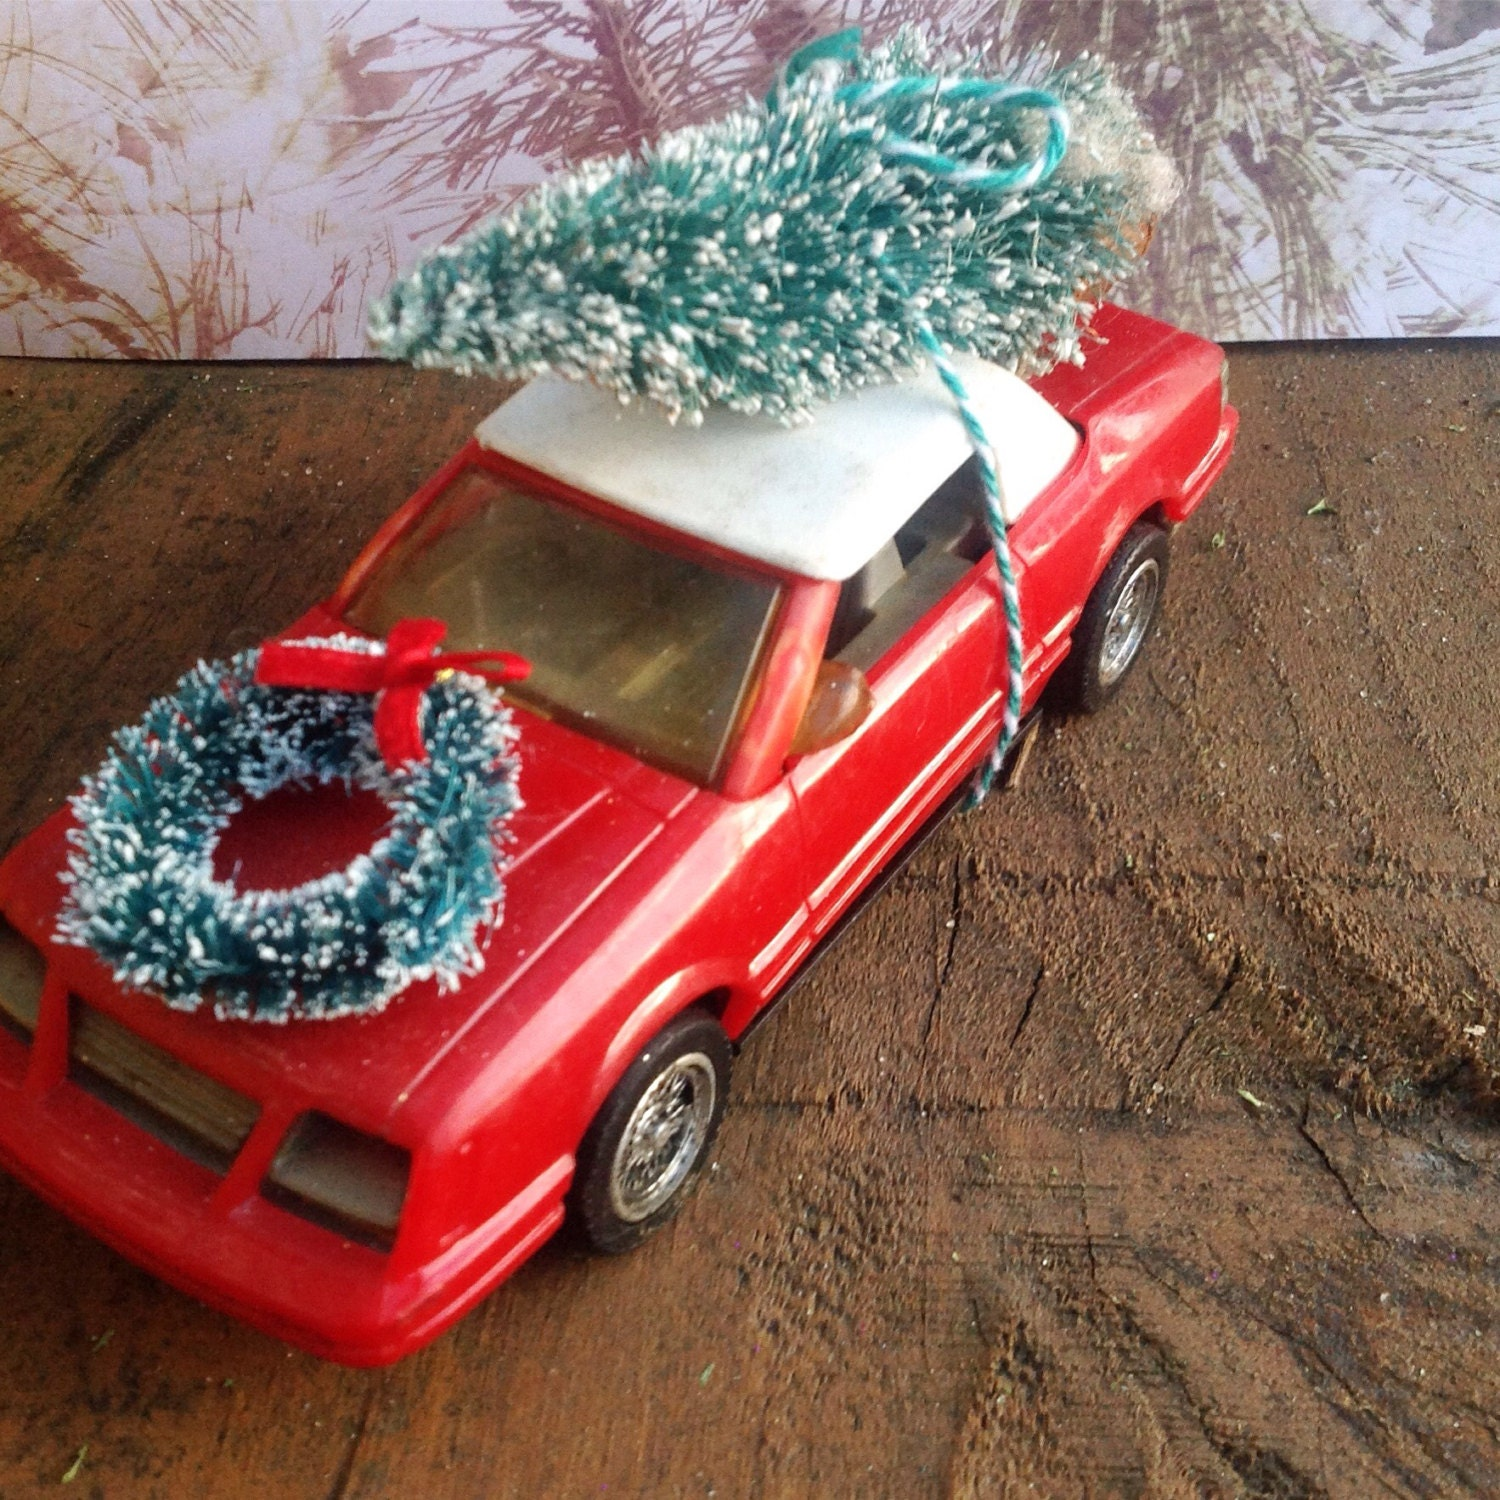 description handmade and hand decorated vintage red convertible christmas car - Christmas Decorations For Your Car